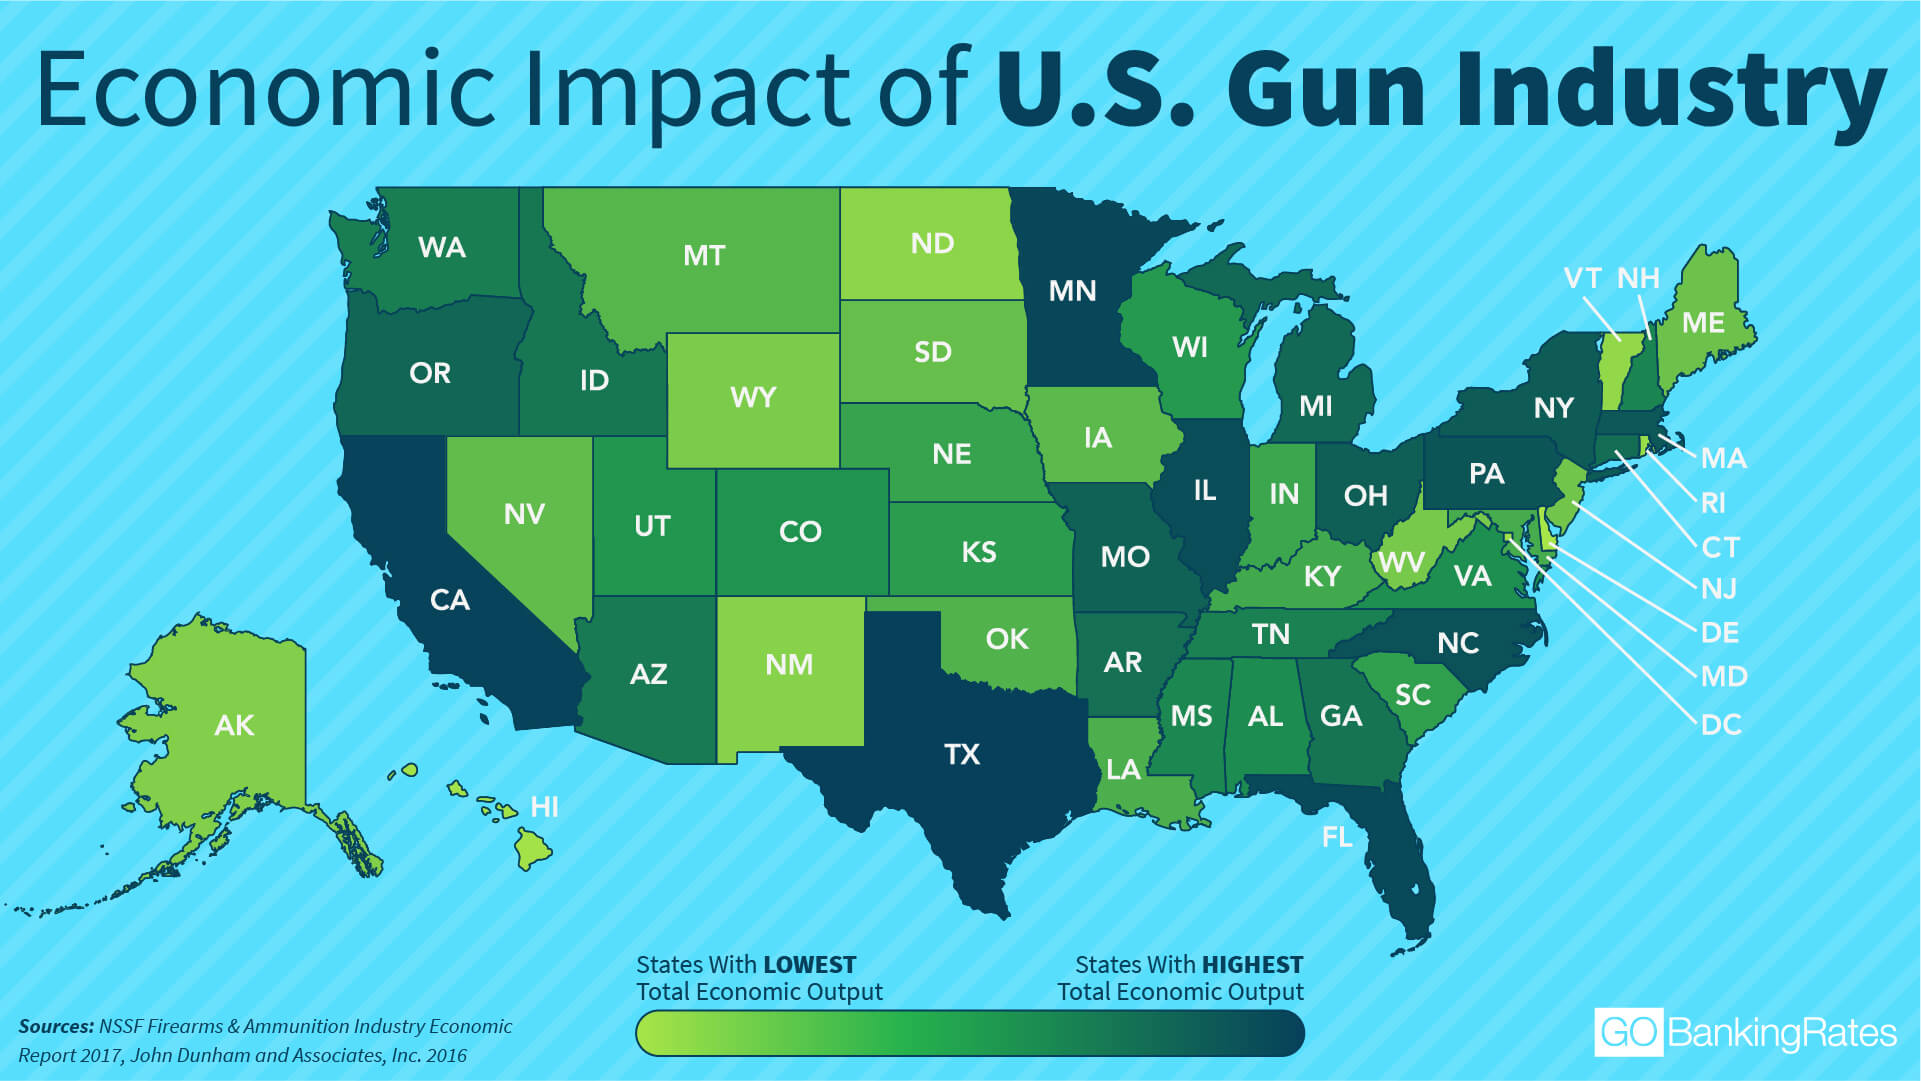 Economic Impact of the U.S. Gun Industry